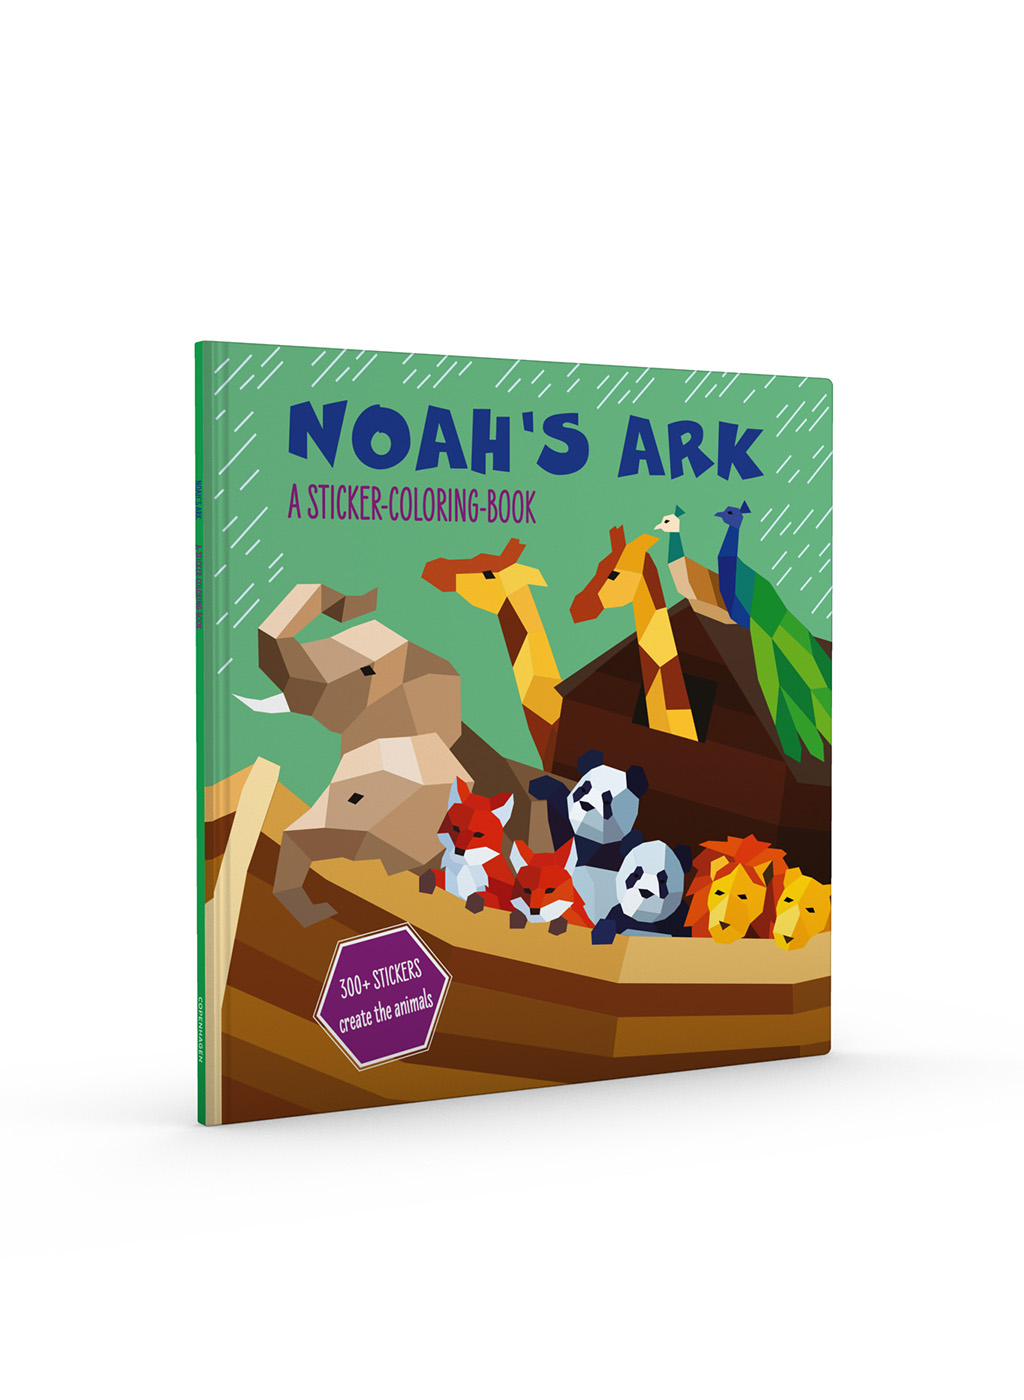 Noah's Ark – a Sticker-Coloring Book